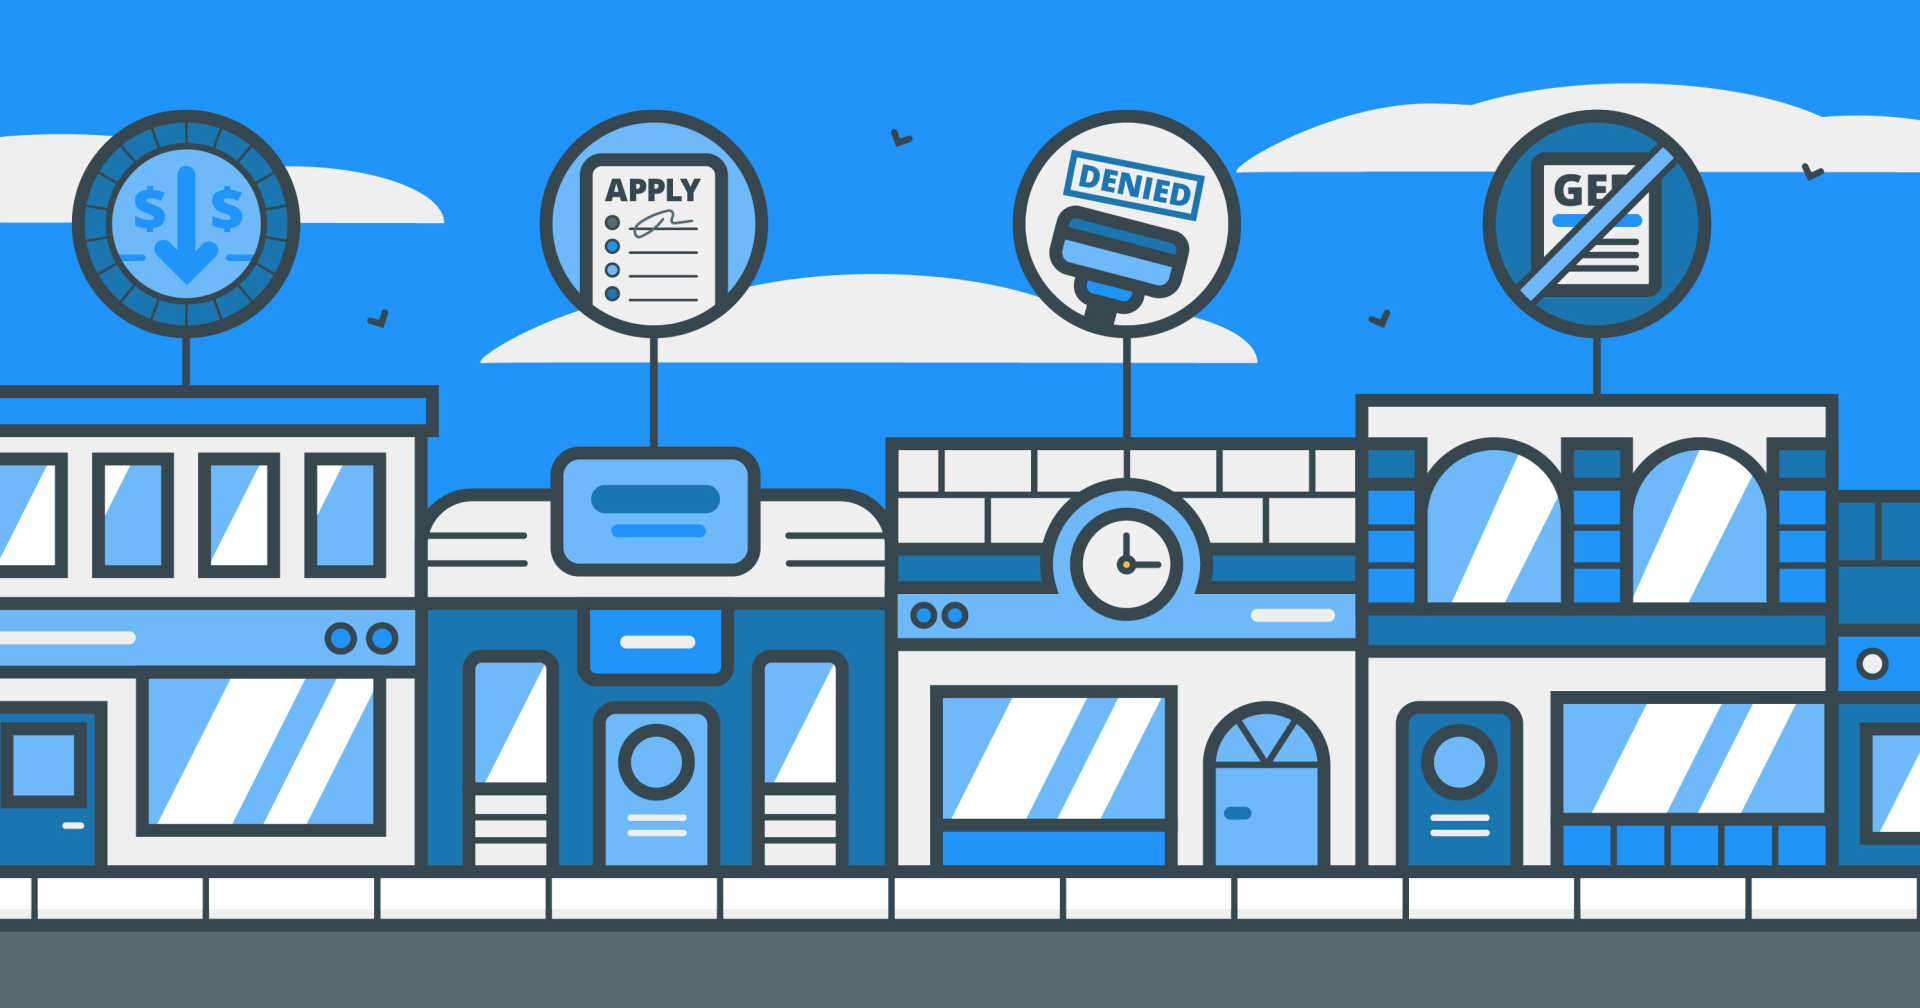 the illustrated main street of retail businesses with icons of their most common struggles